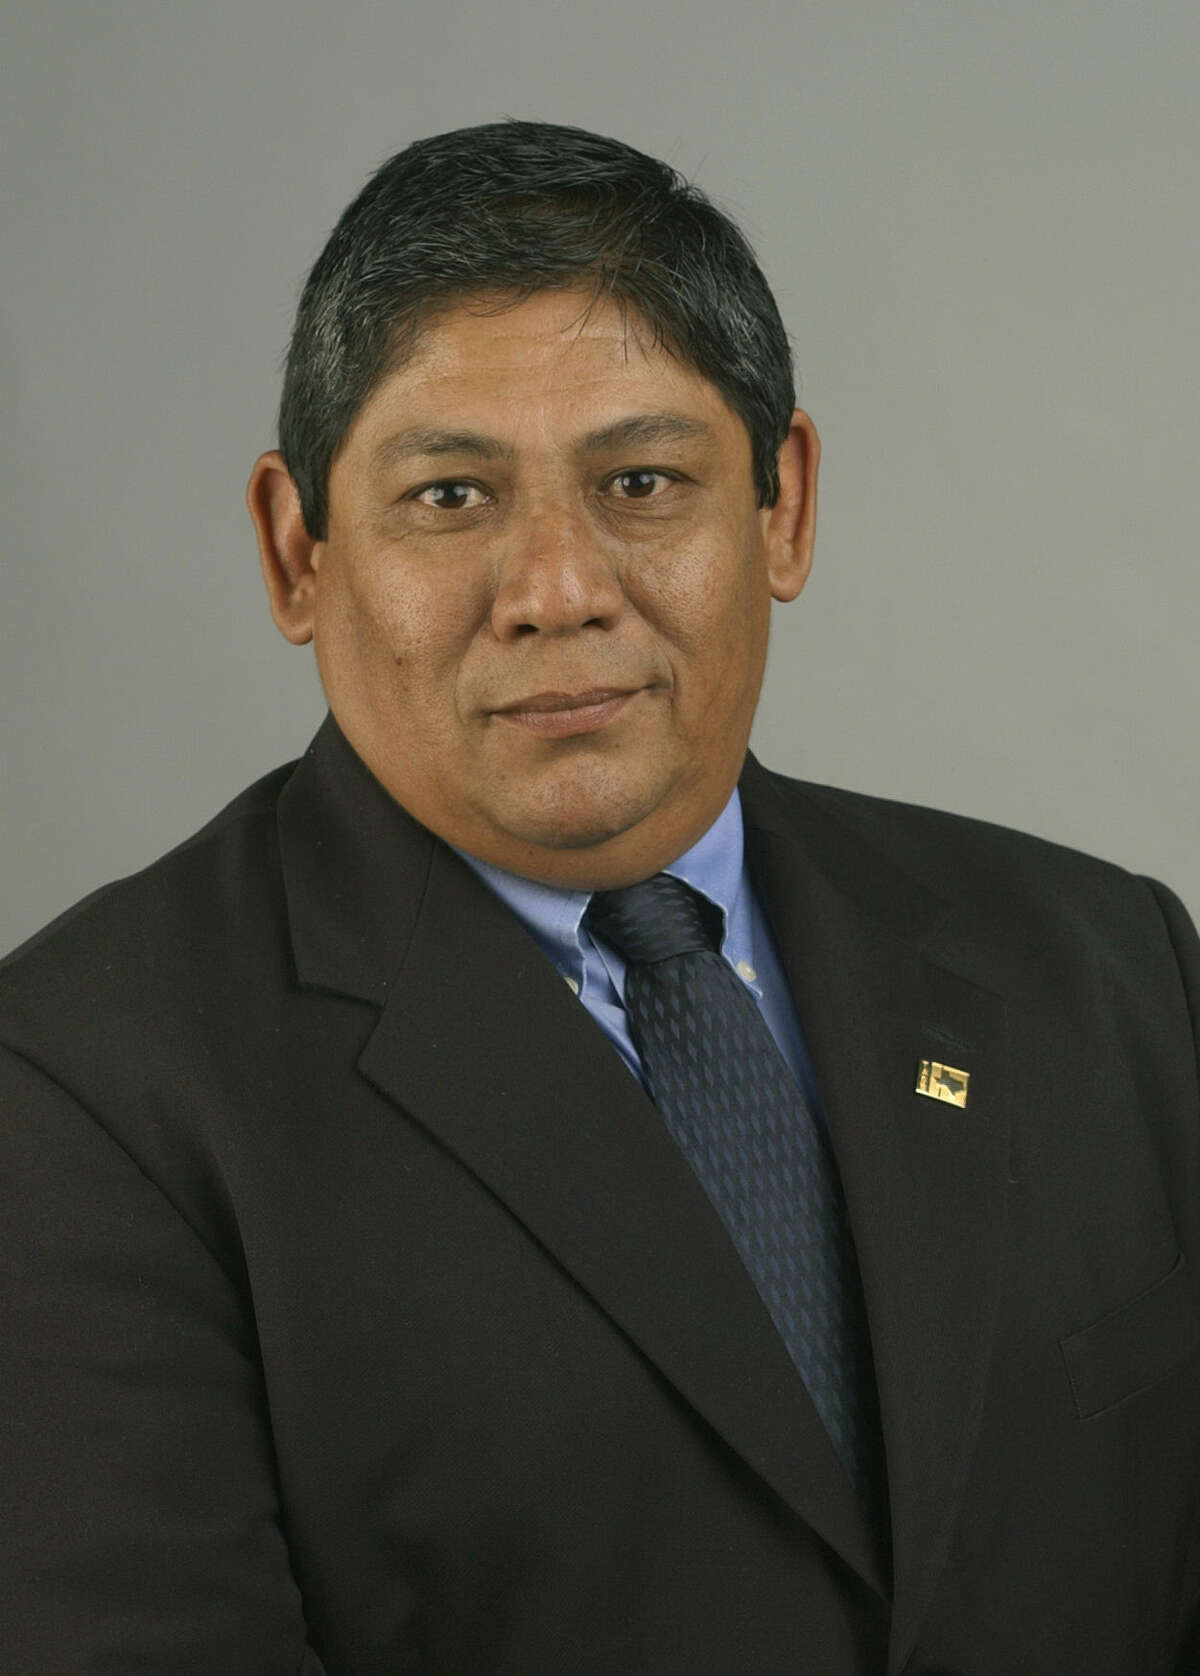 Sylvester E. Vasquez Jr., 54, project manager and incumbent